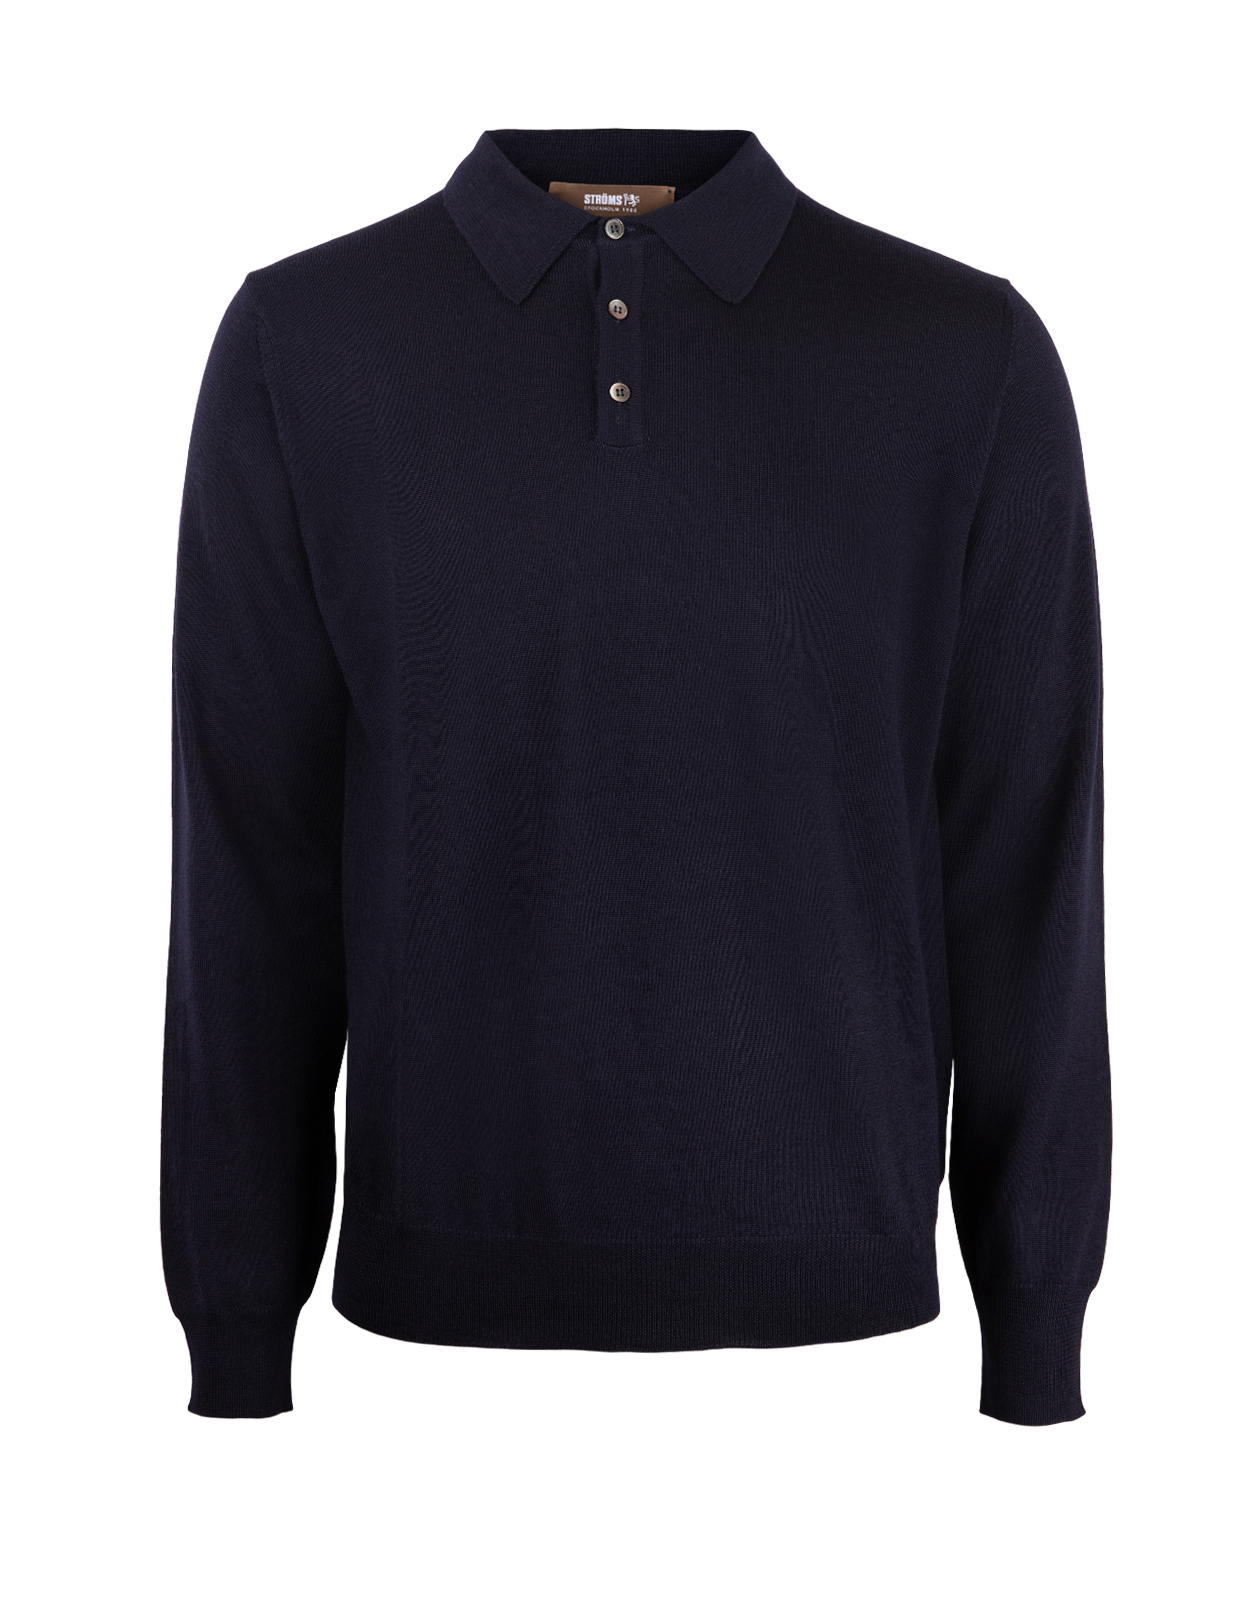 Poloshirt Sweater Merino Navy